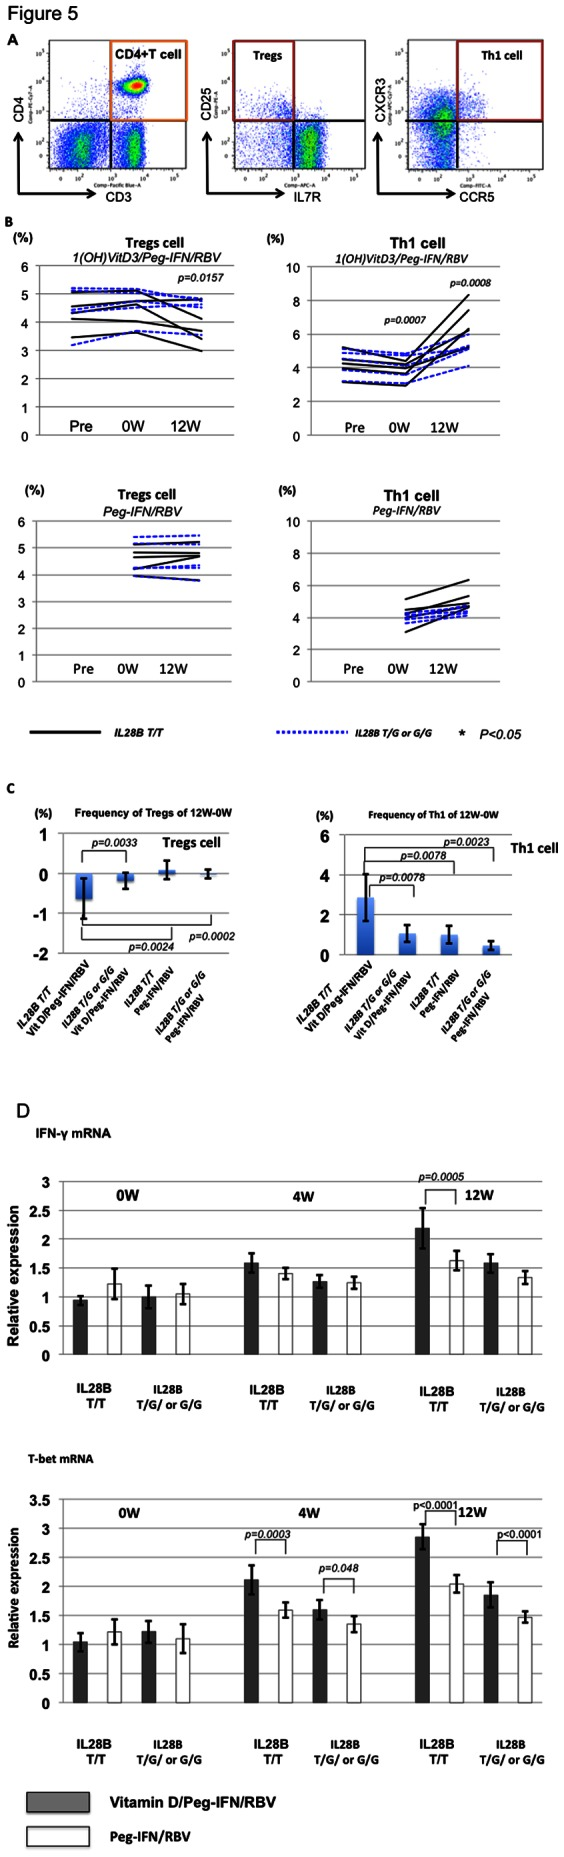 Comparison of Th1 and Tregs between 1(OH) vitamin D3/Peg-IFN/RBV and Peg-IFN/RBV. Representative dot plots of CD3 + CD4 + CD25 + IL7R − (Tregs) and CD3 + CD4 + CXCR3 + CCR5 + (Th1 cells) are shown. (A) Frequencies of Th1 and Tregs among the 4 groups (IL28B T/T vitamin D3/Peg-IFN/RBV, IL28B T/G or G/G vitamin D3/Peg-IFN/RBV, IL28B T/T Peg-IFN/RBV, and IL28B T/G or G/G Peg-IFN/RBV) are shown. (B) Comparison of the T-bet and IFN-γ mRNA expression between subjects treated with vitamin D3/Peg-IFN/RBV therapy and those treated with Peg-IFN/RBV therapy. Each group included 5 patients. Total mRNA was extracted from isolated CD4 + T cells. The relative expression levels are shown in bar graphs. The statistical analysis was carried out by independent student t -test.